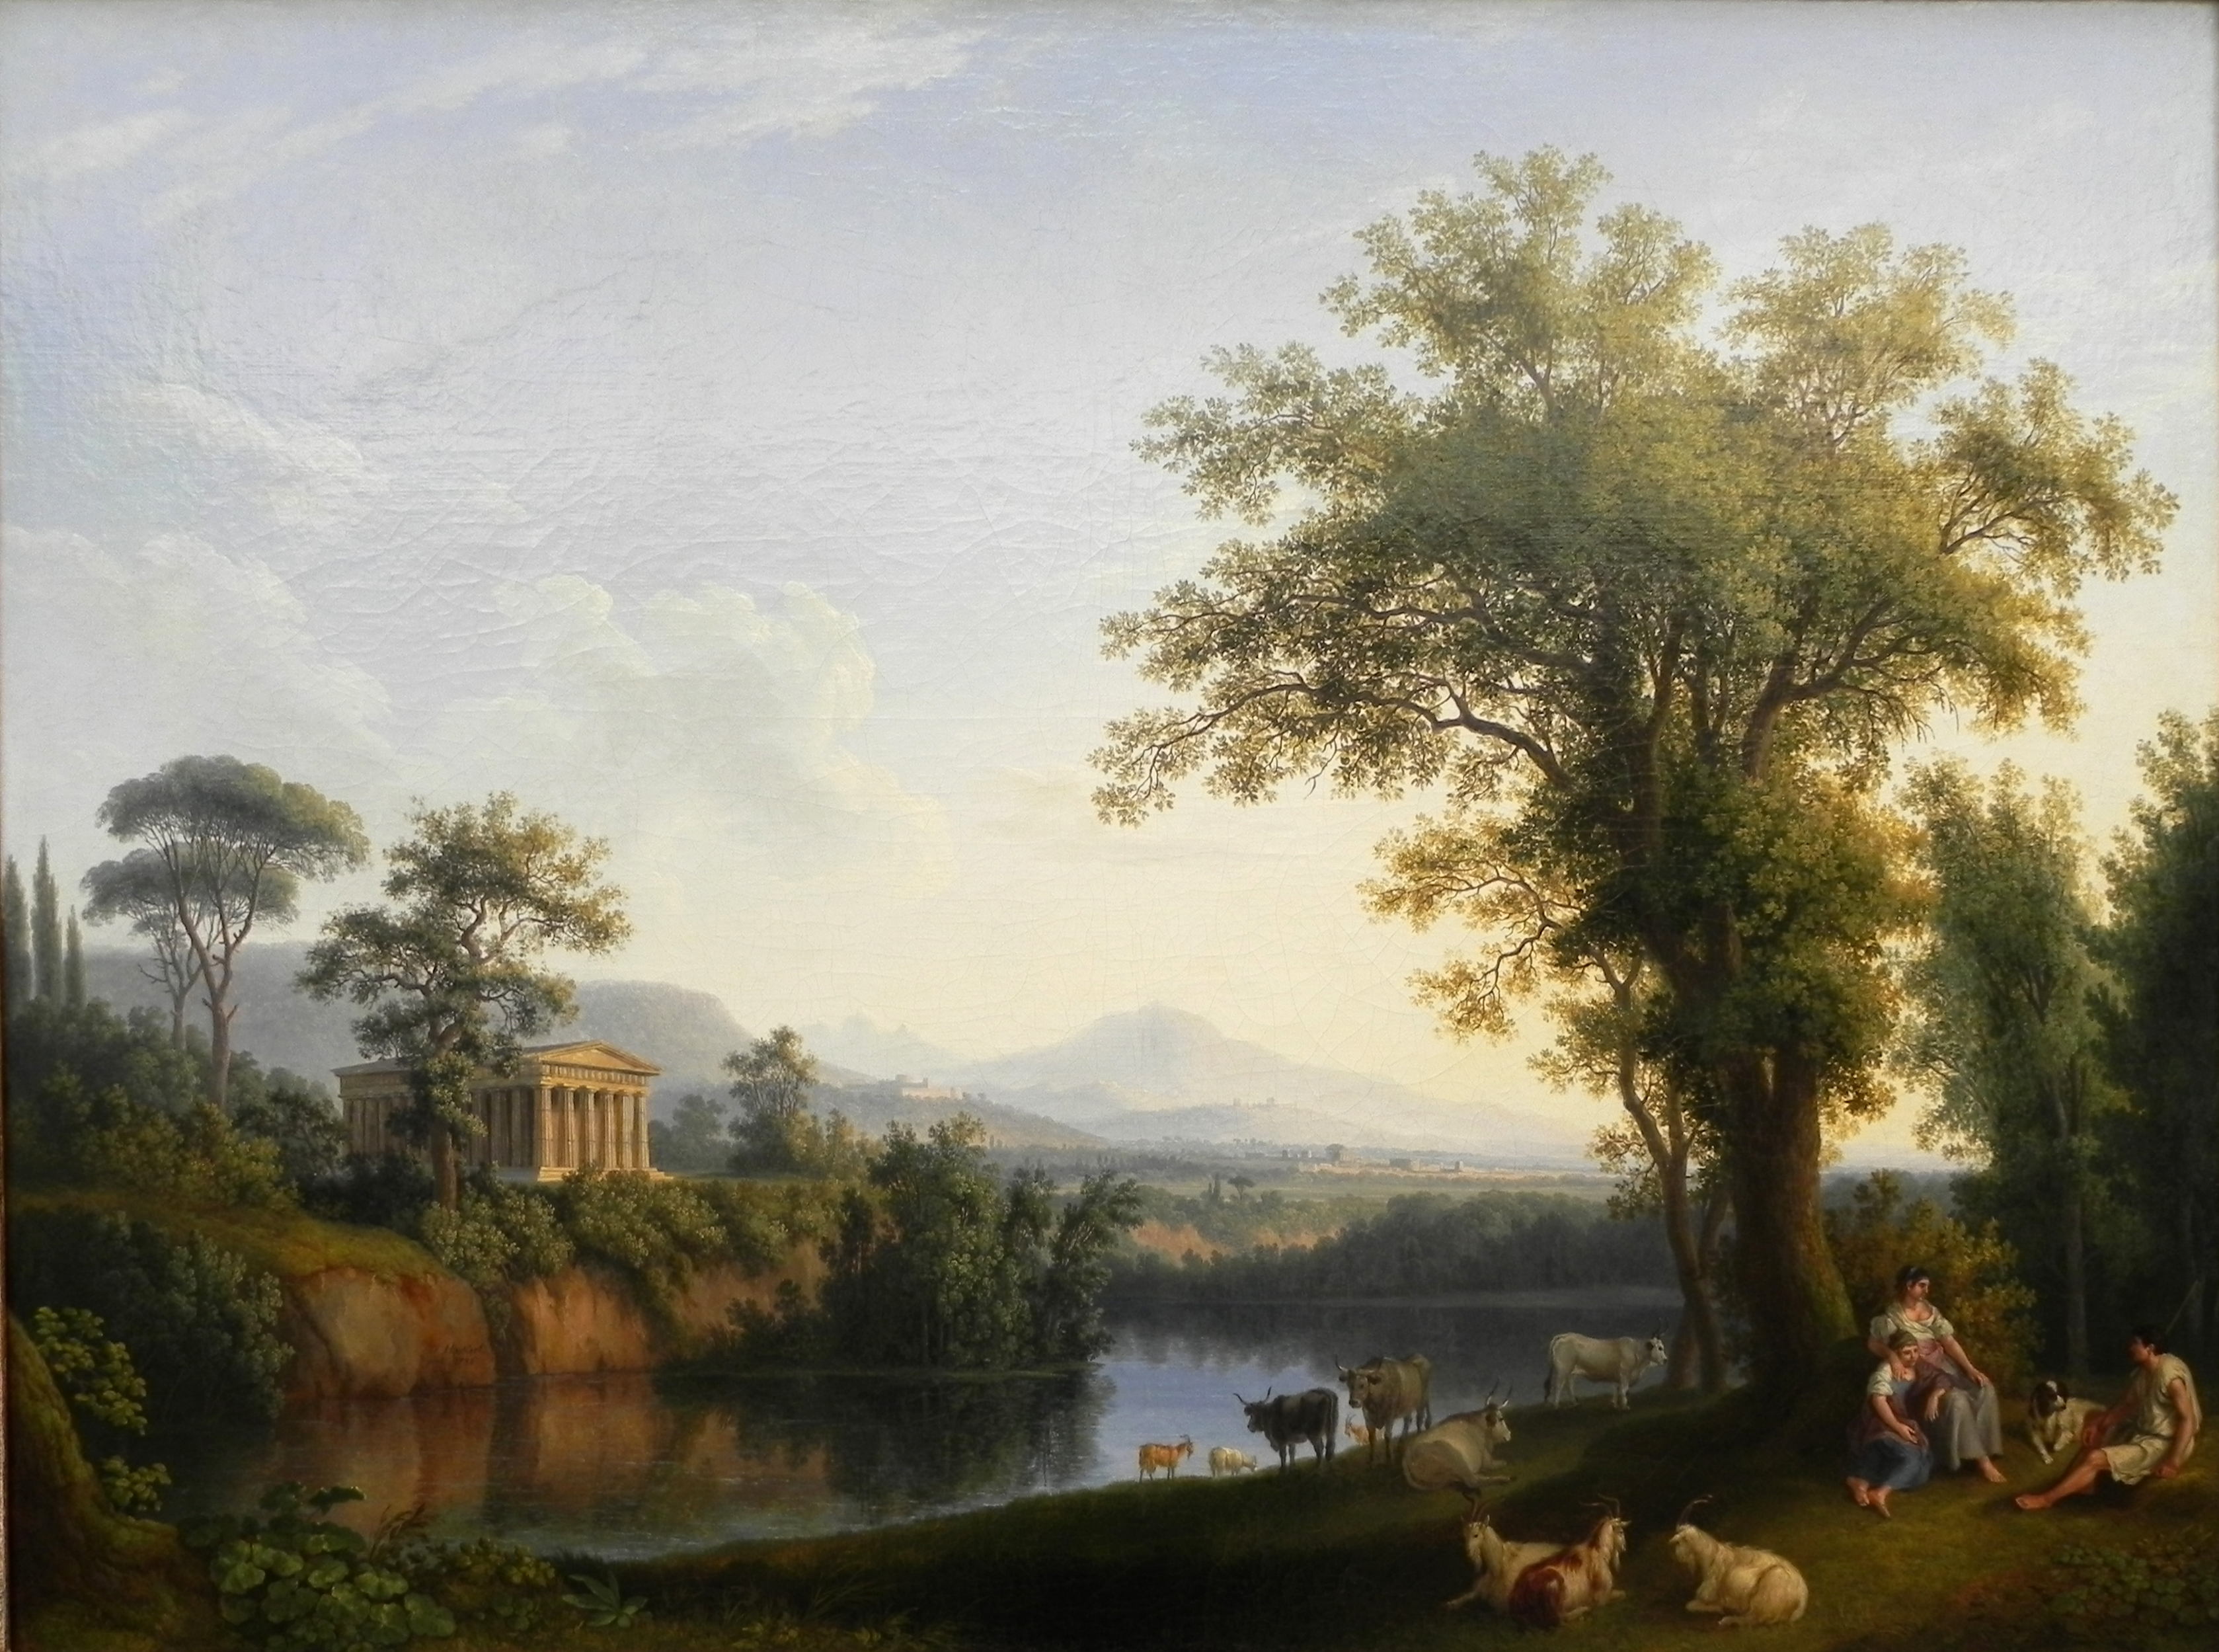 File:Jacob Philipp Hackert Italien Flusslandschaft.JPG.